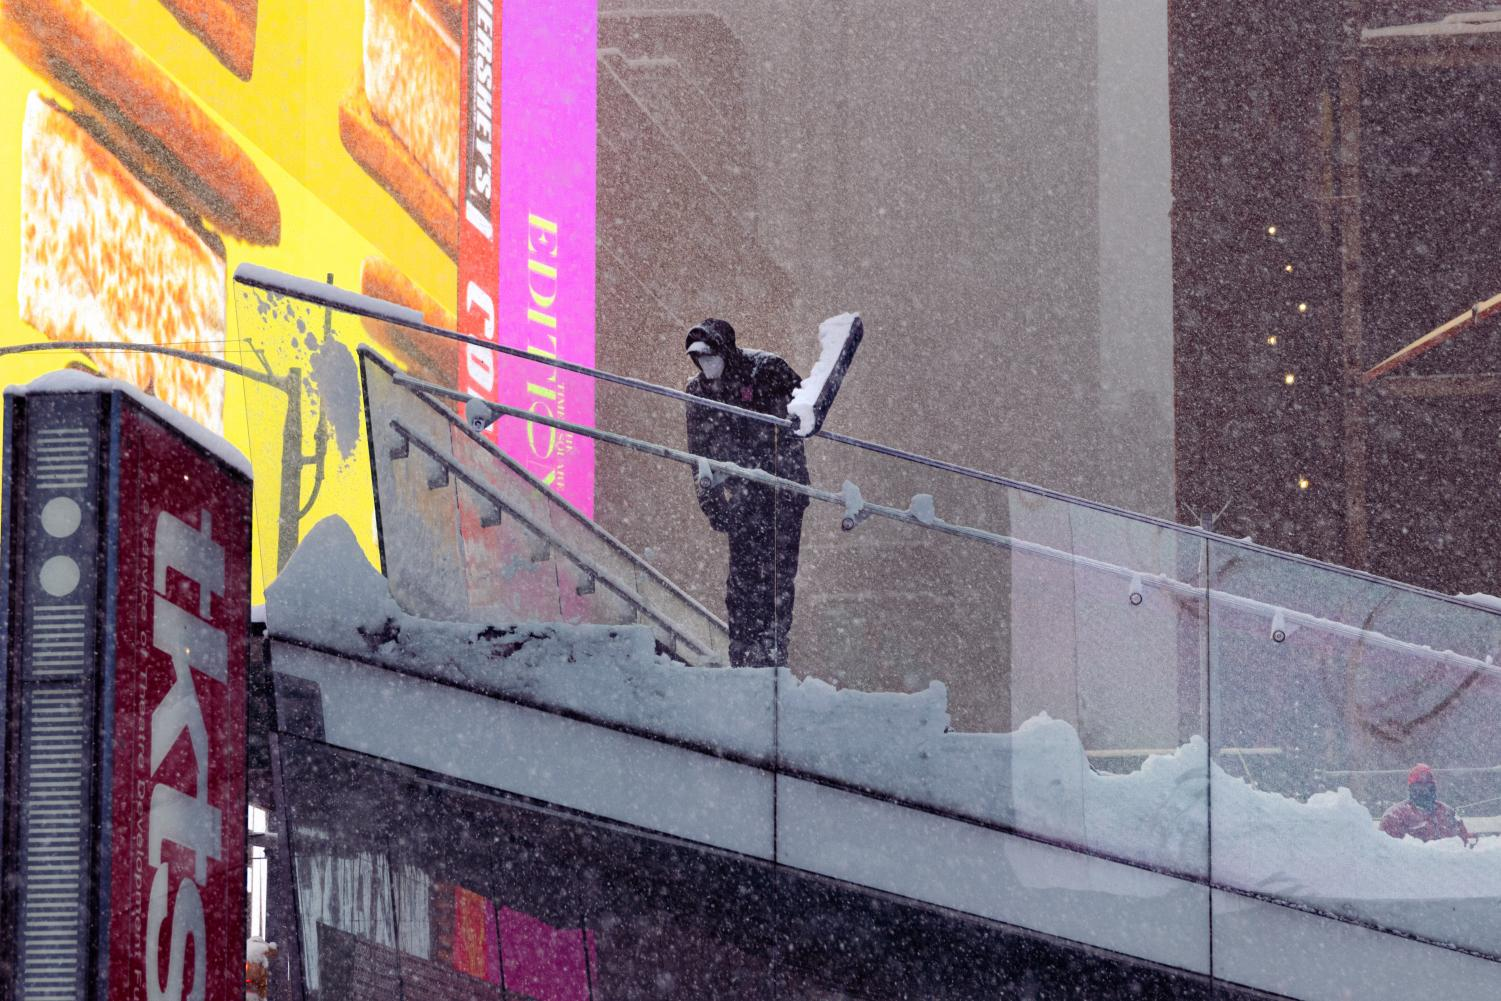 someone shoveling off the top of the stairs at Times Square